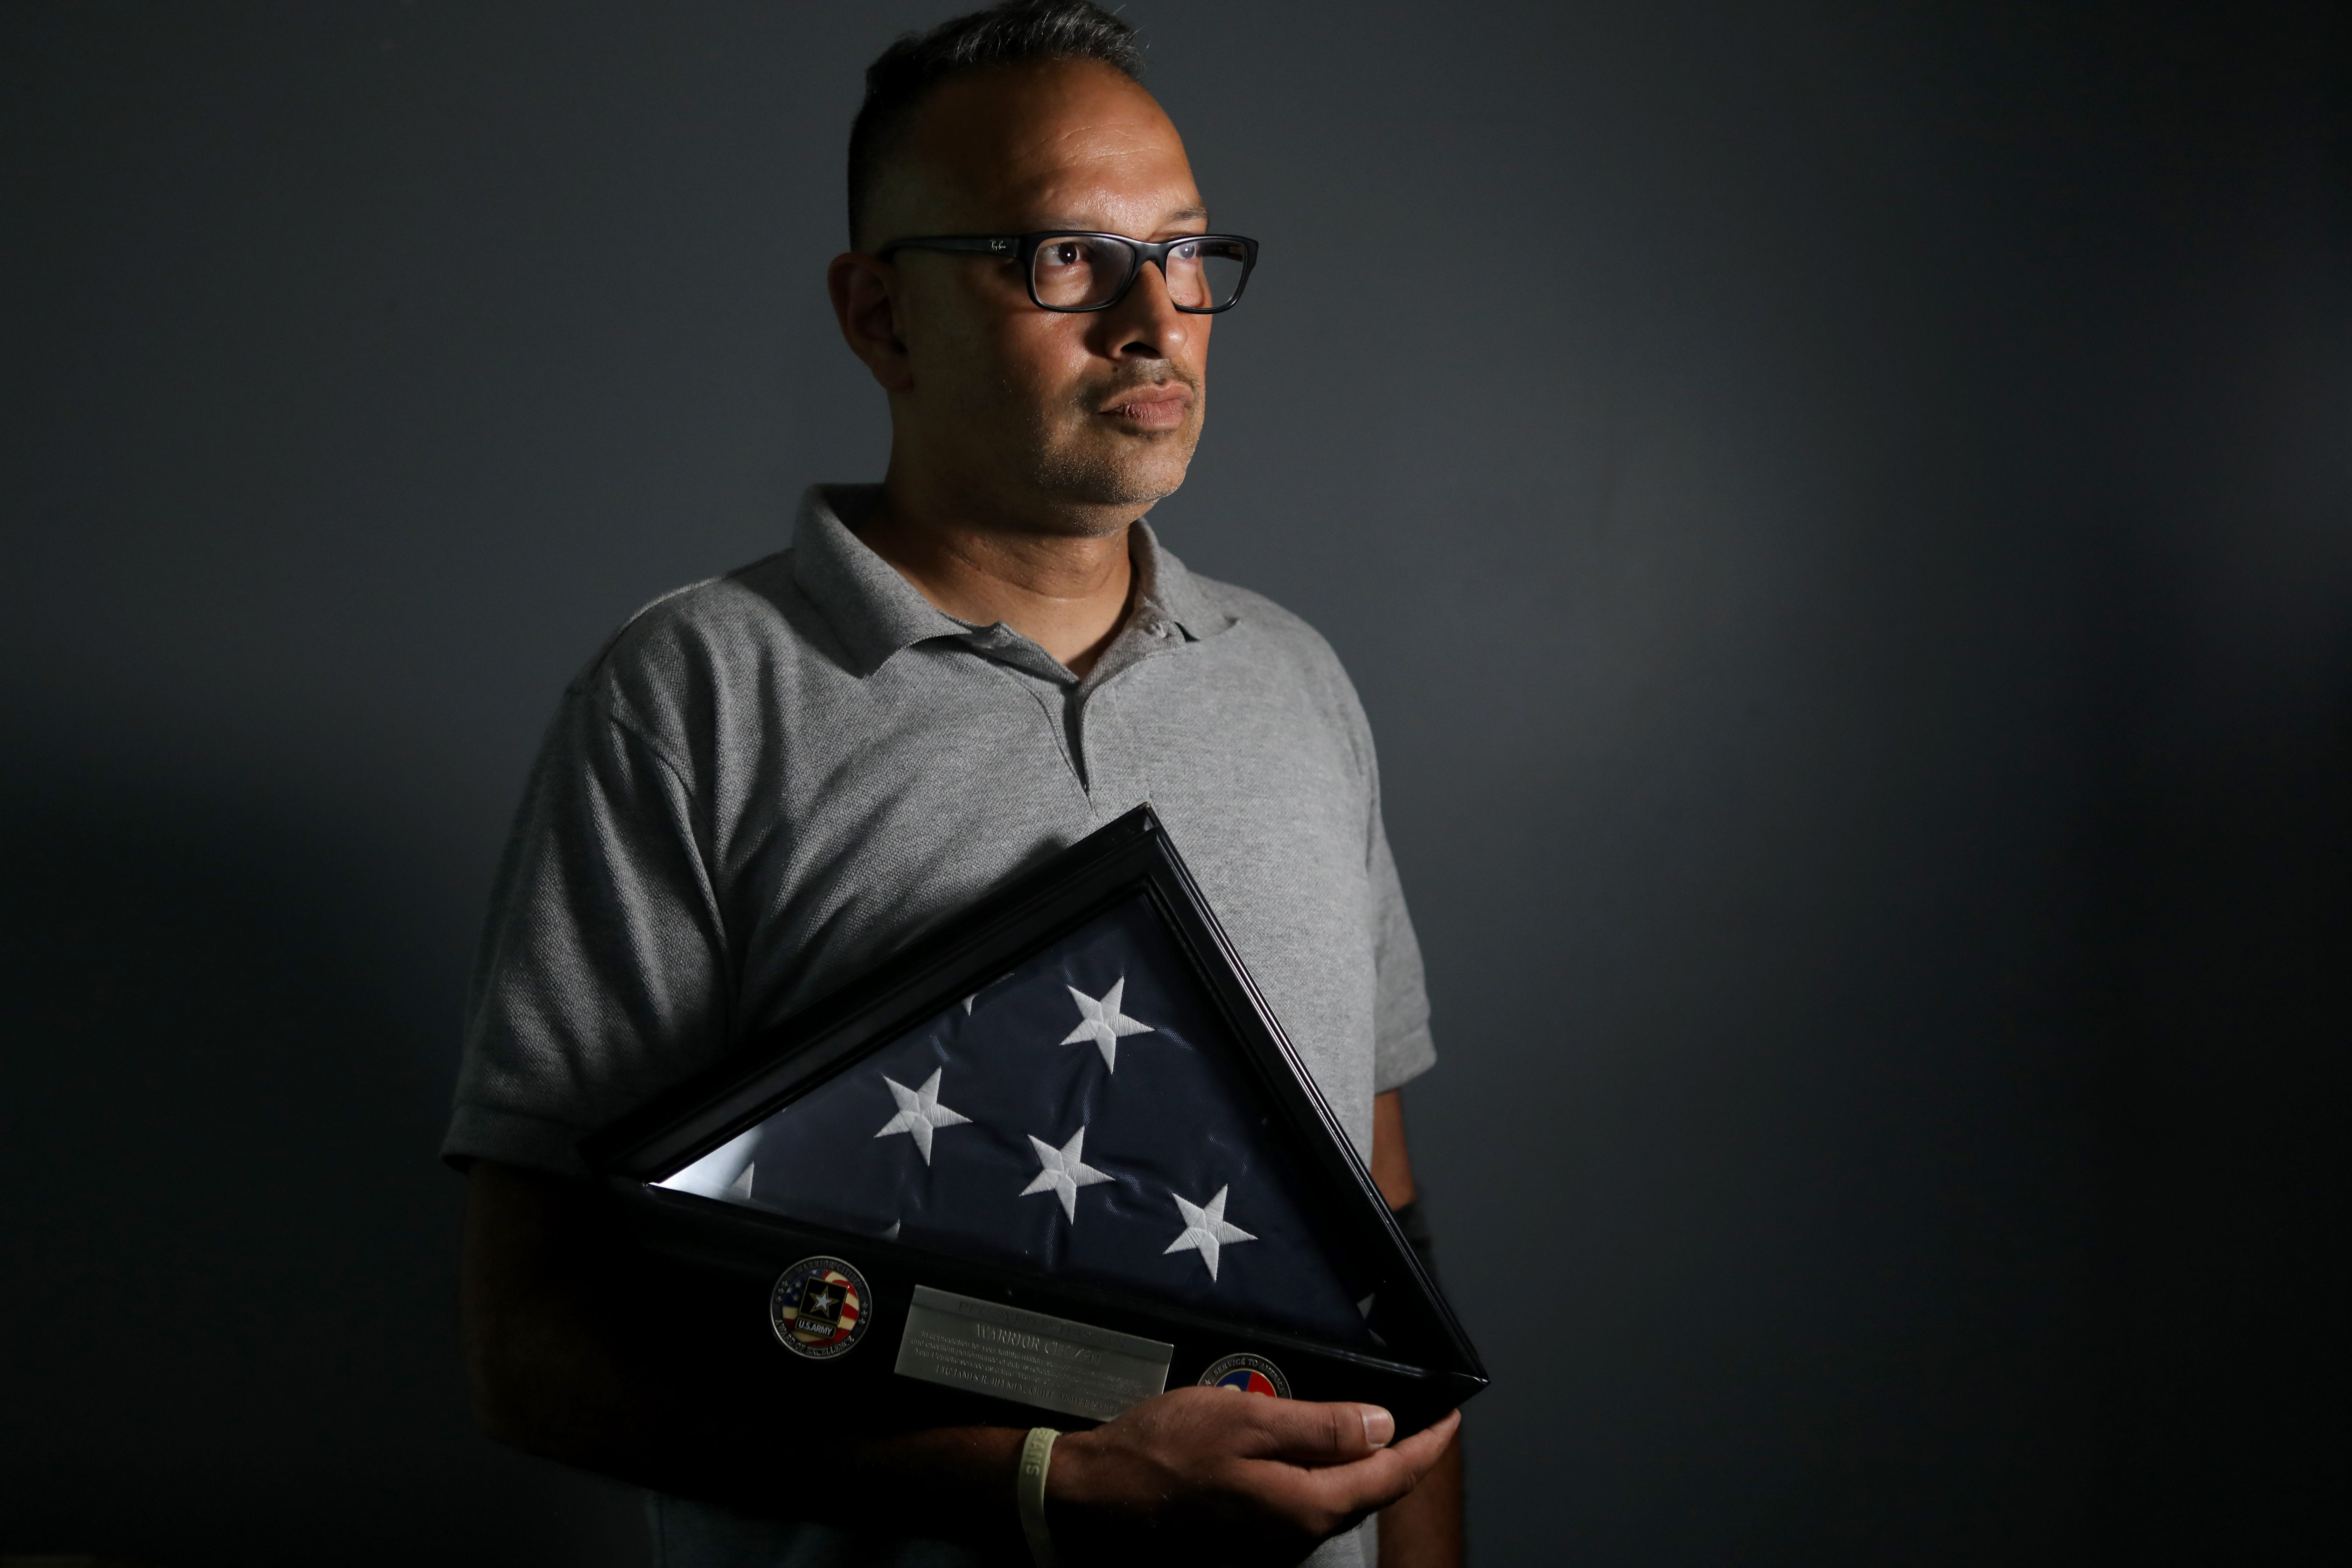 Farhaj Hassan, a Muslim American soldier from Helmetta, New Jersey, was in basic training on Sept. 11, 2001. Here he poses with a flag he was awarded after serving among the first rotation of military members deployed in Operation Iraqi Freedom.